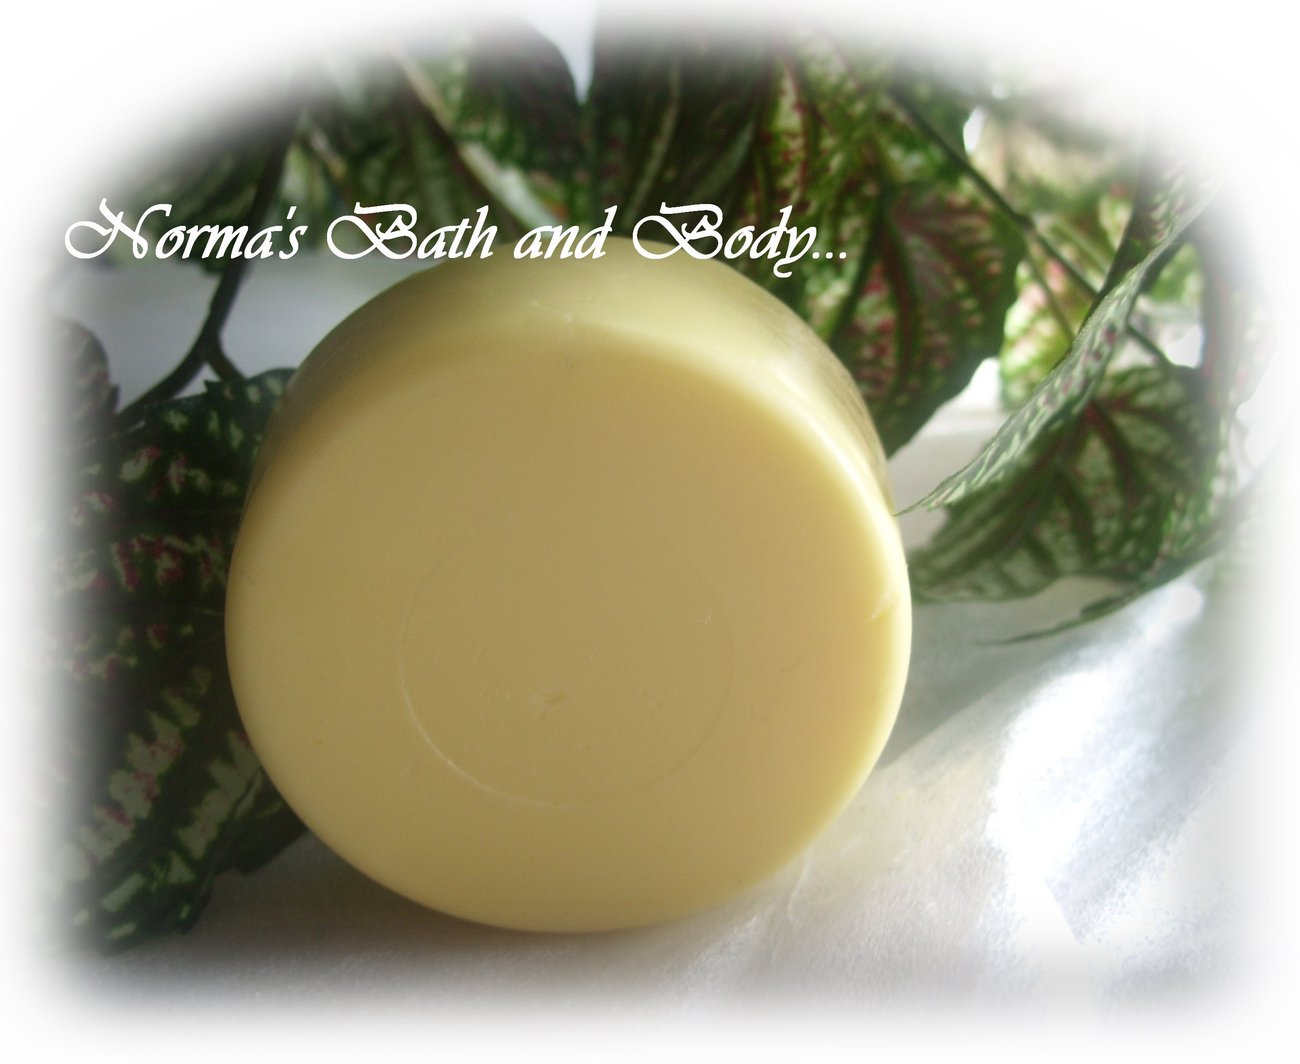 Lemon_and_chocolate_oval_soap